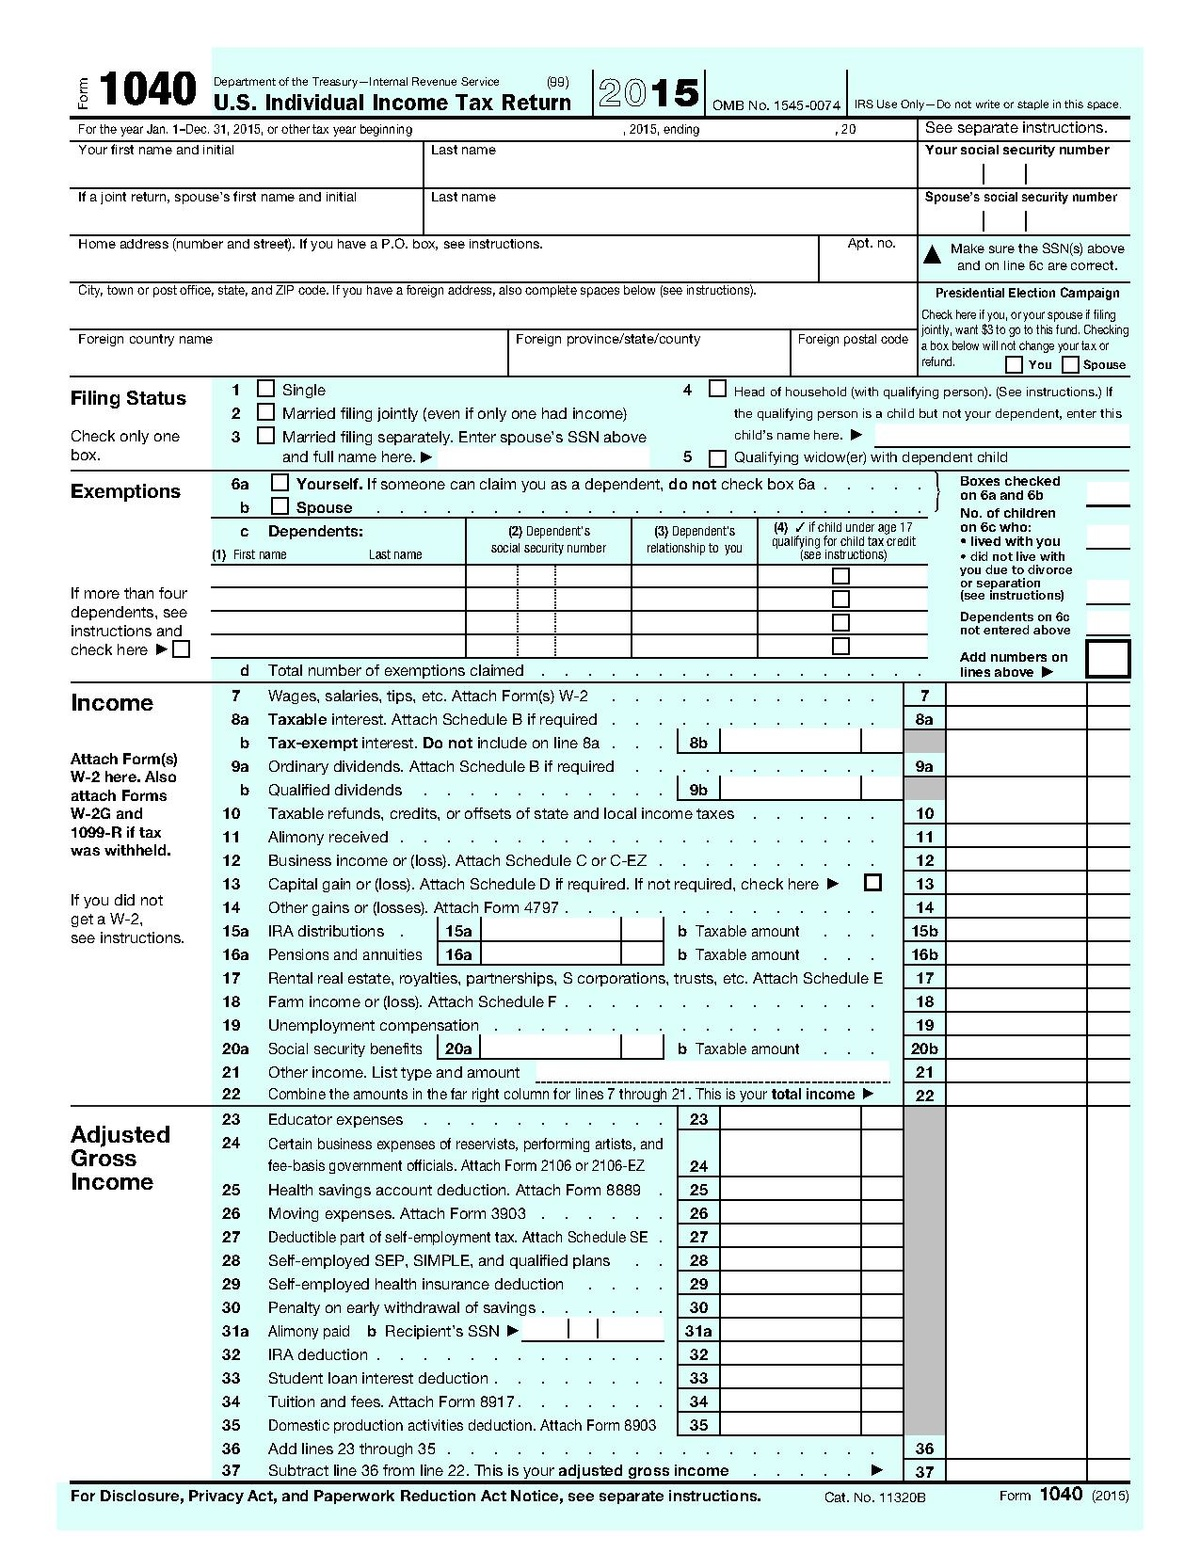 How to fill out form 1040: preparing your tax return — oblivious.